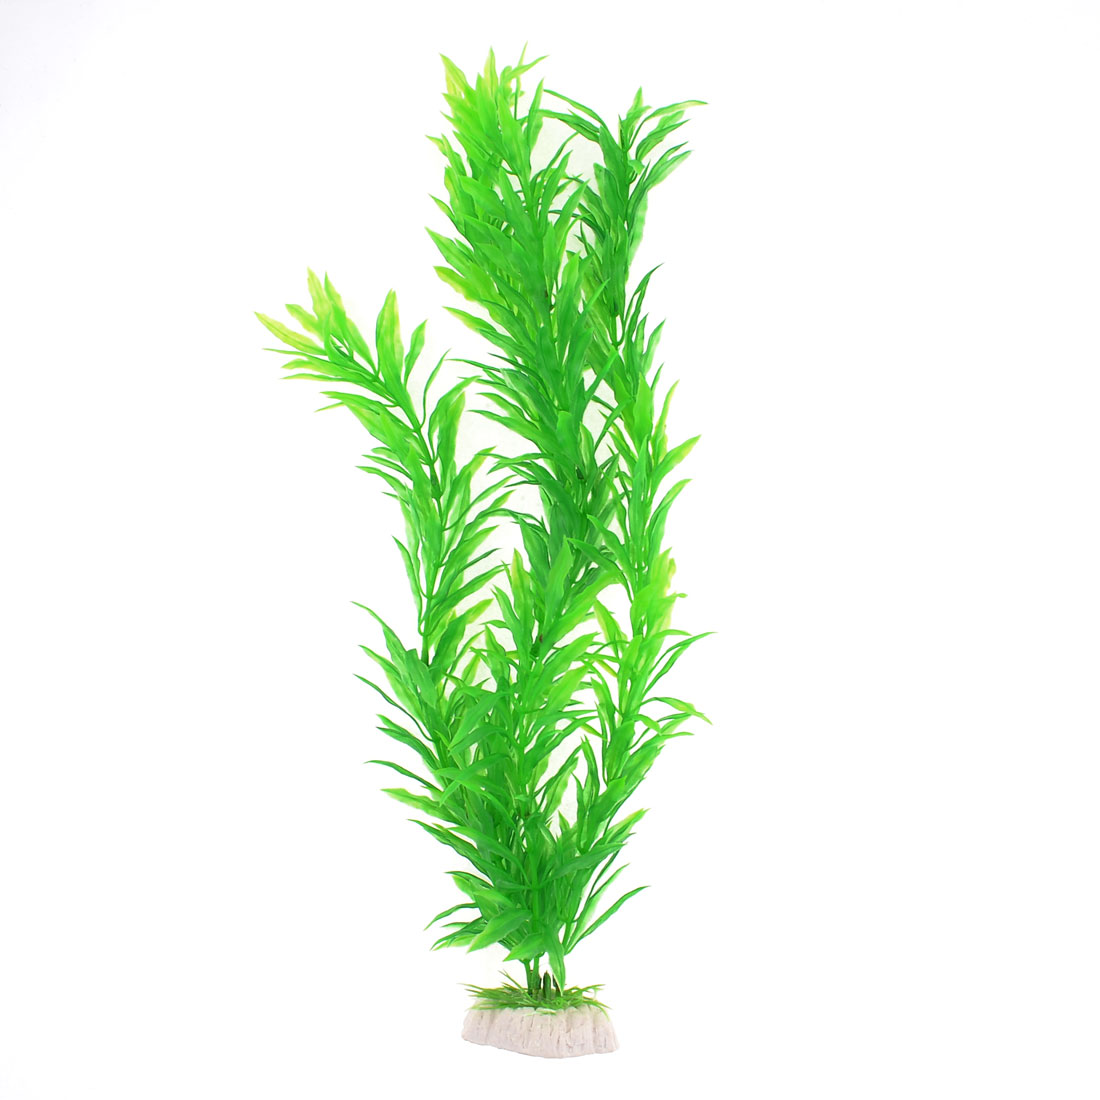 "Fish Tank Aquarium Decor Plastic Green Grass Plant 15.7"" Height"